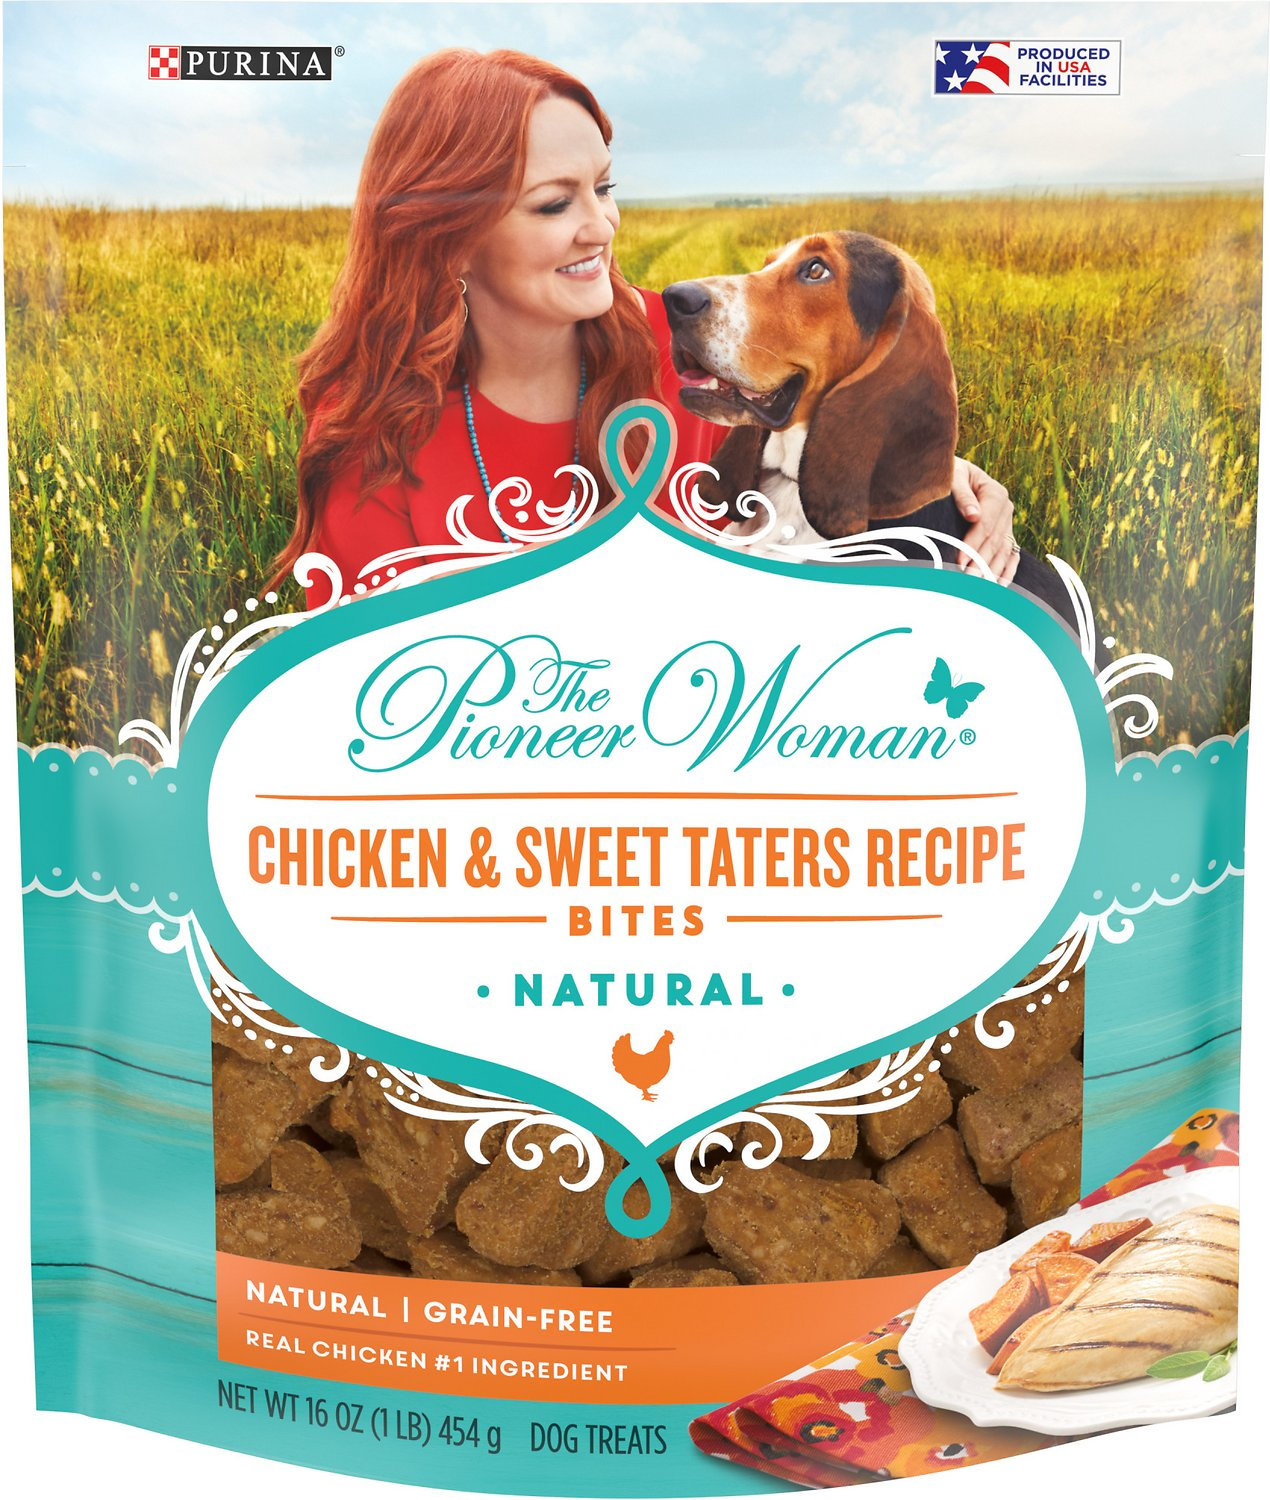 THE PIONEER WOMAN Chicken & Sweet Taters Recipe Bites ...